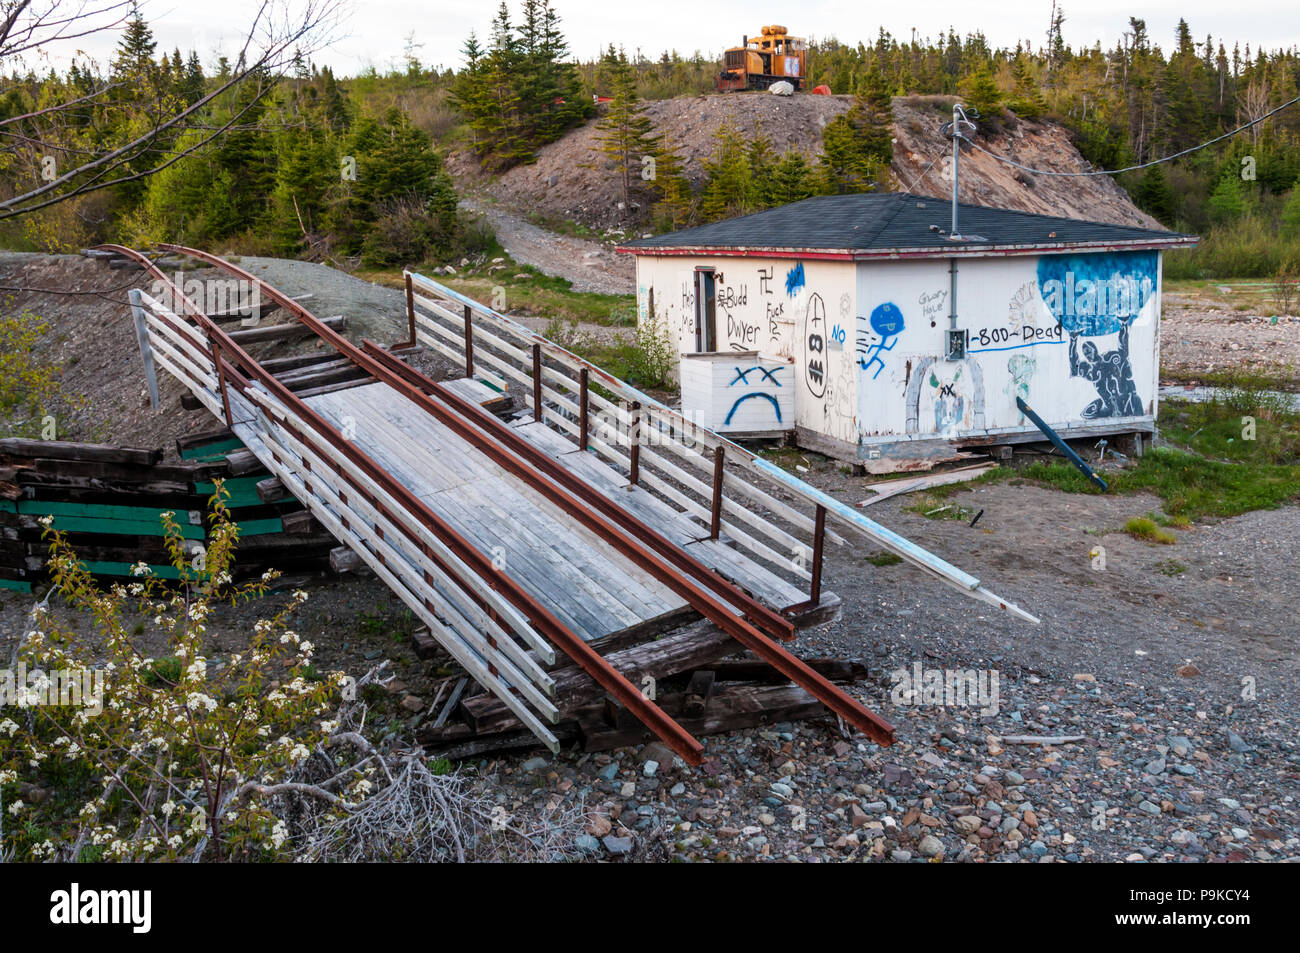 Remains of Trinity Loop amusement park in Newfoundland. DETAILS IN DESCRIPTION. - Stock Image